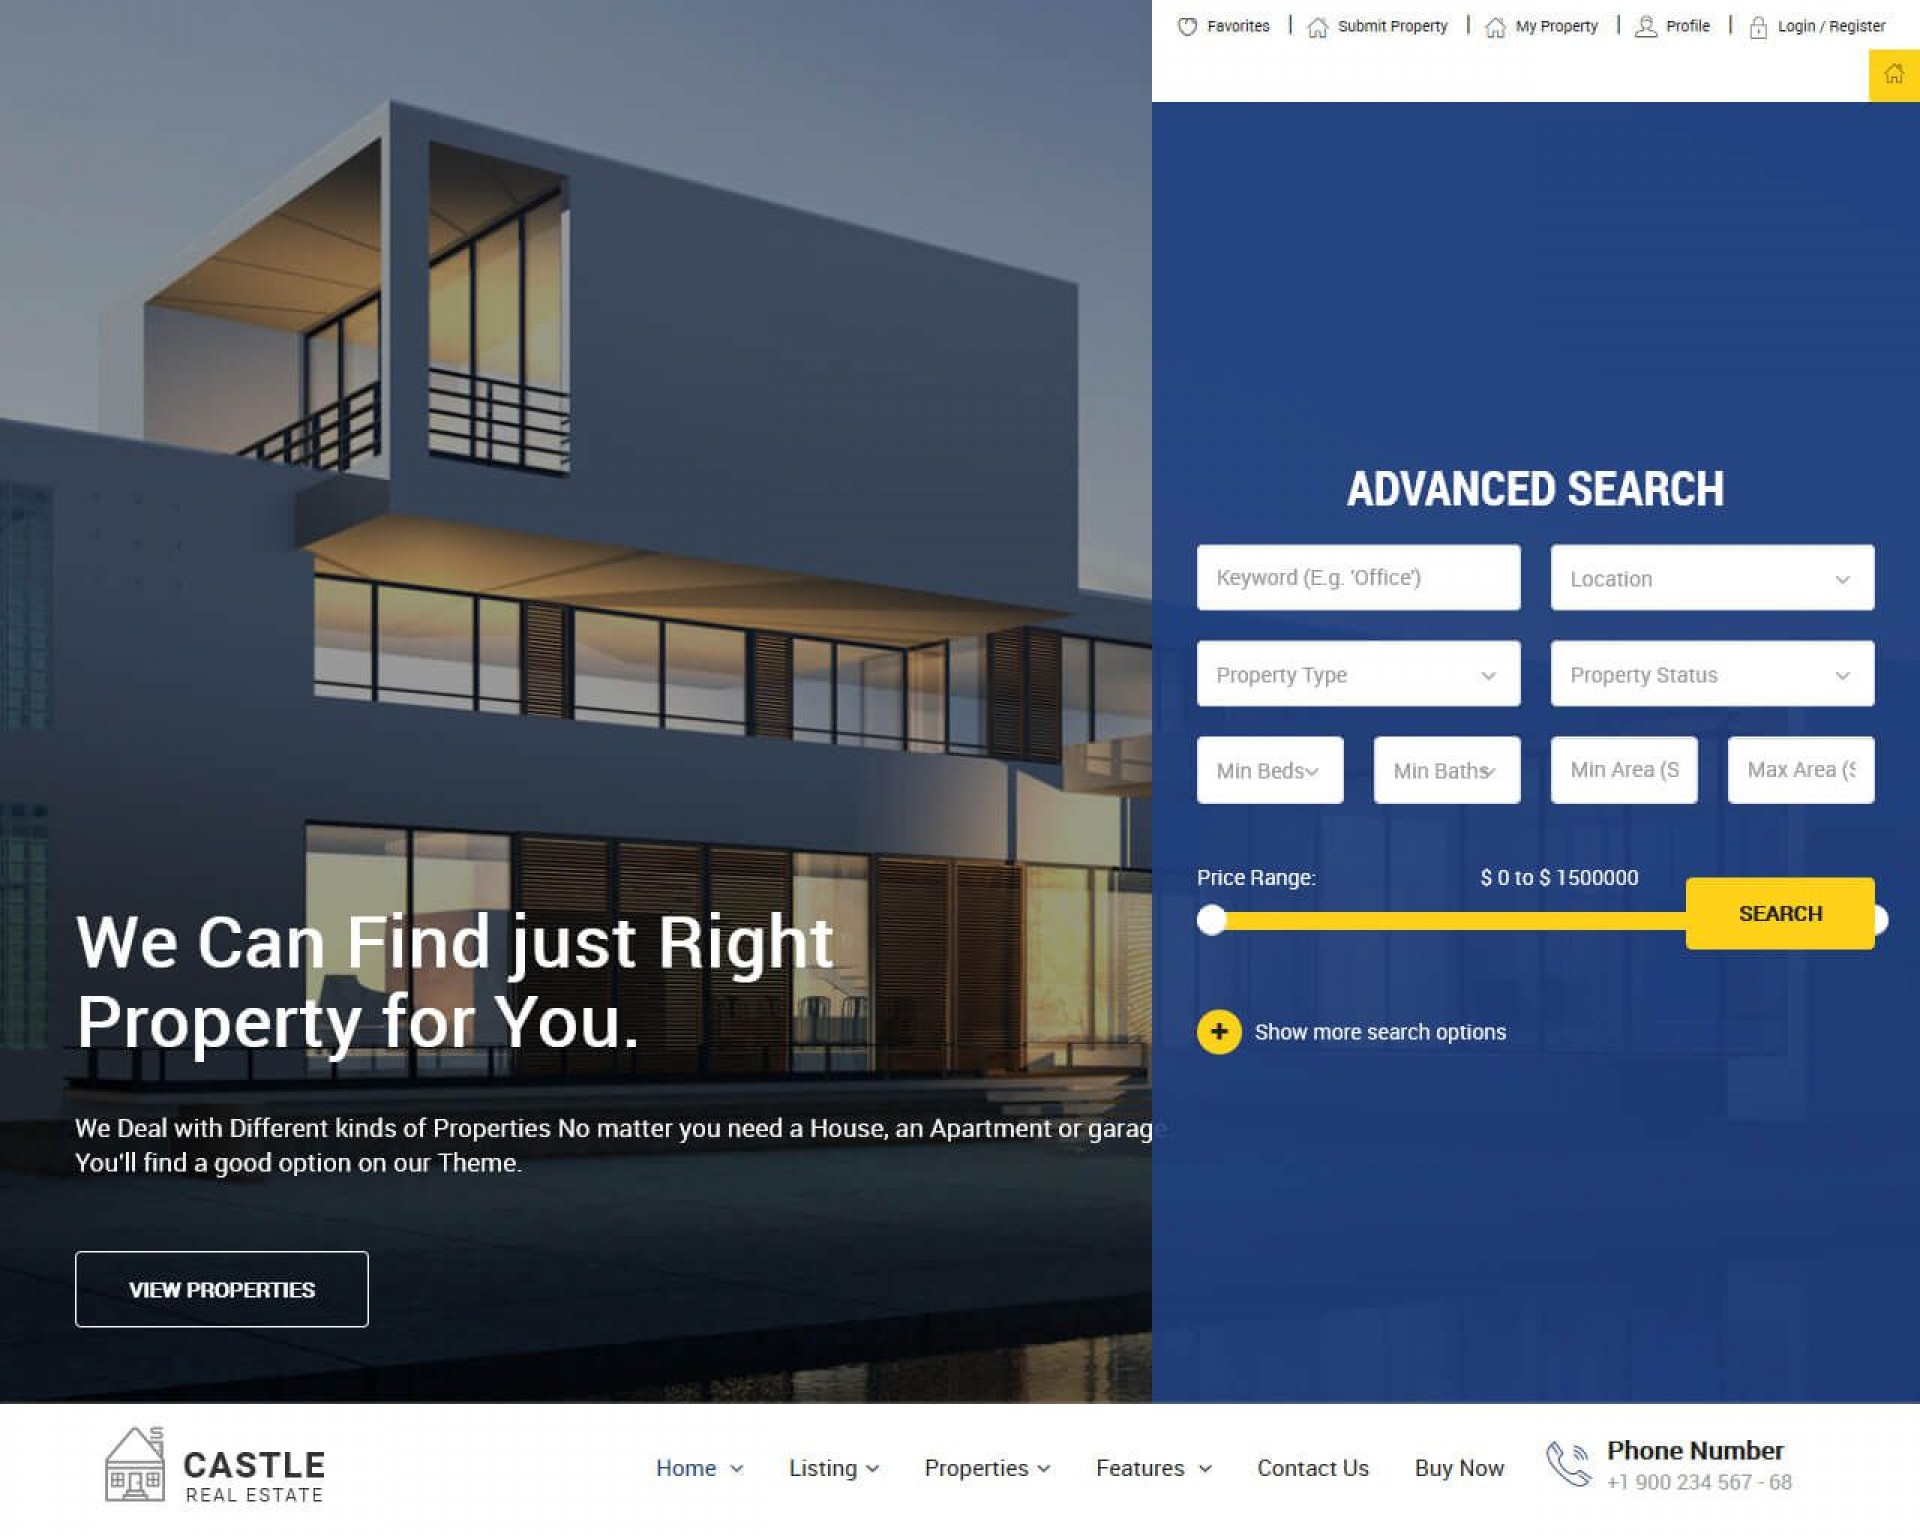 001 Frightening Real Estate Website Template Example  Templates Free Download Bootstrap 4 Listing Wordpres1920